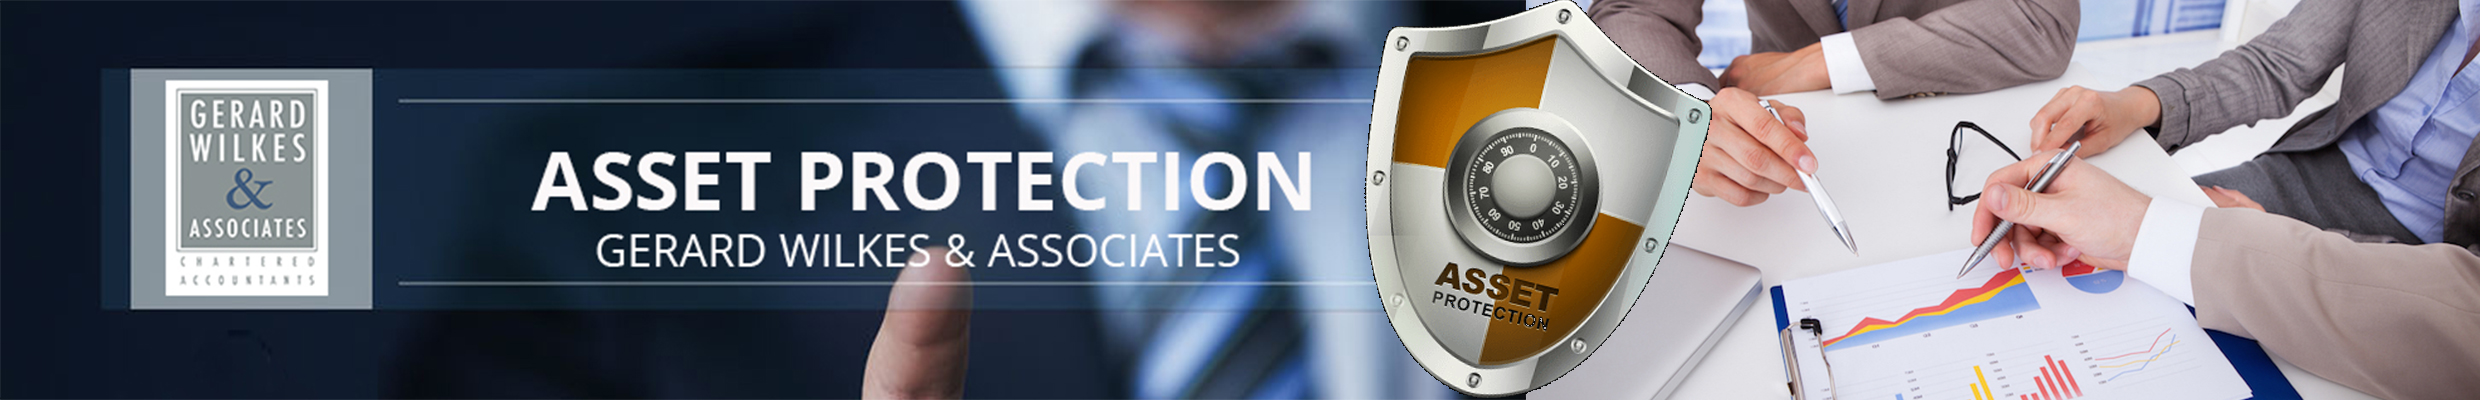 Asset-Protection-1a